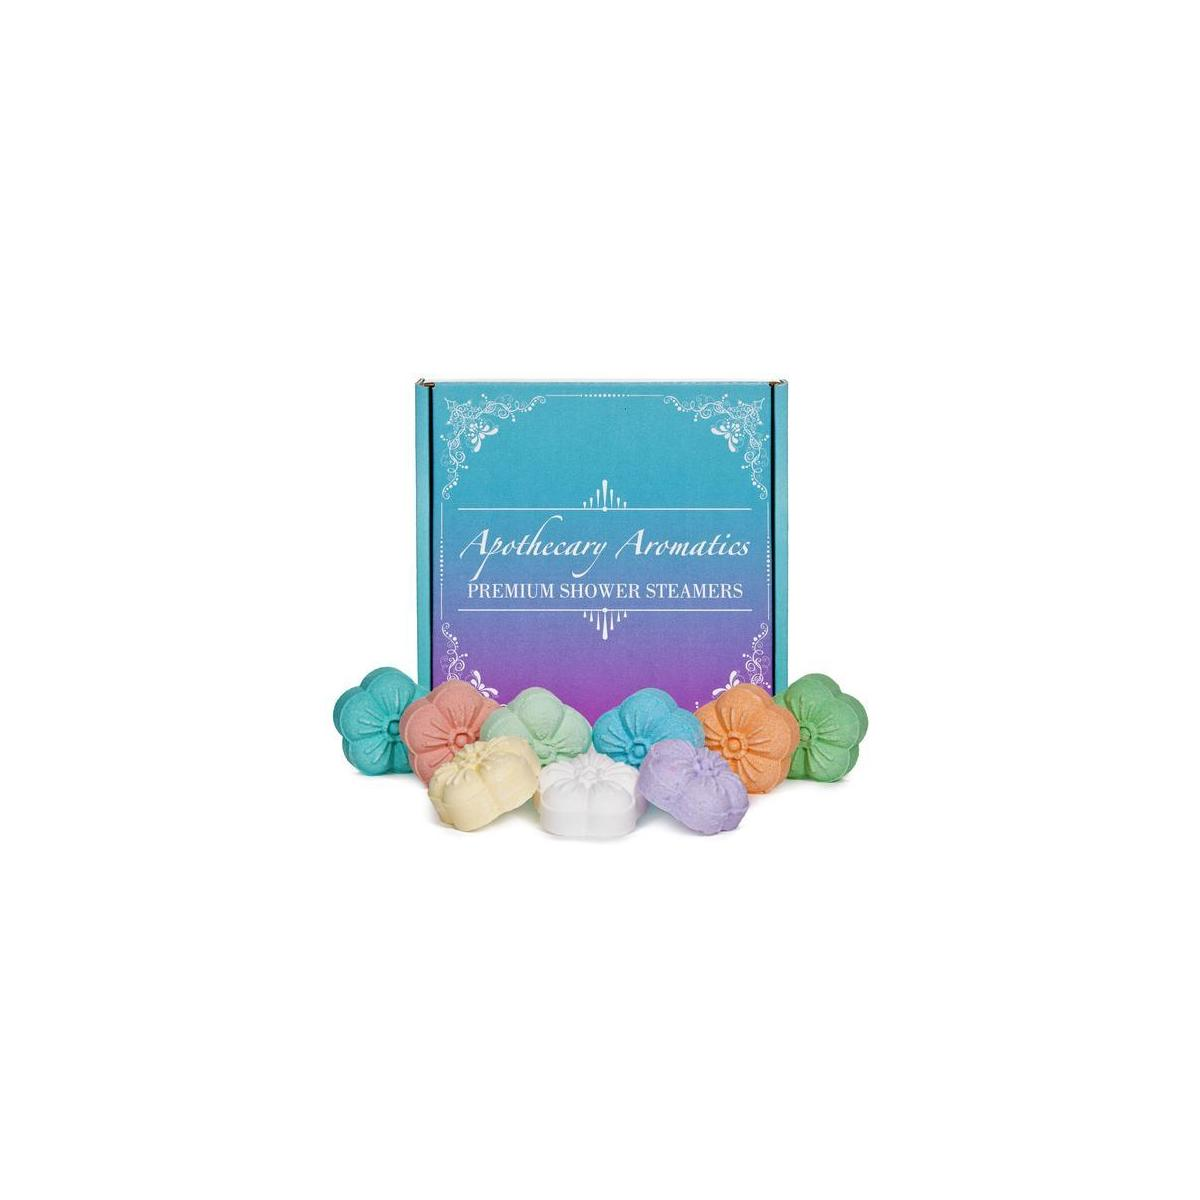 Menthol Infused Aromatherapy Shower Steamers, Pack of 9 vaporizing shower bombs, Home Spa Experience